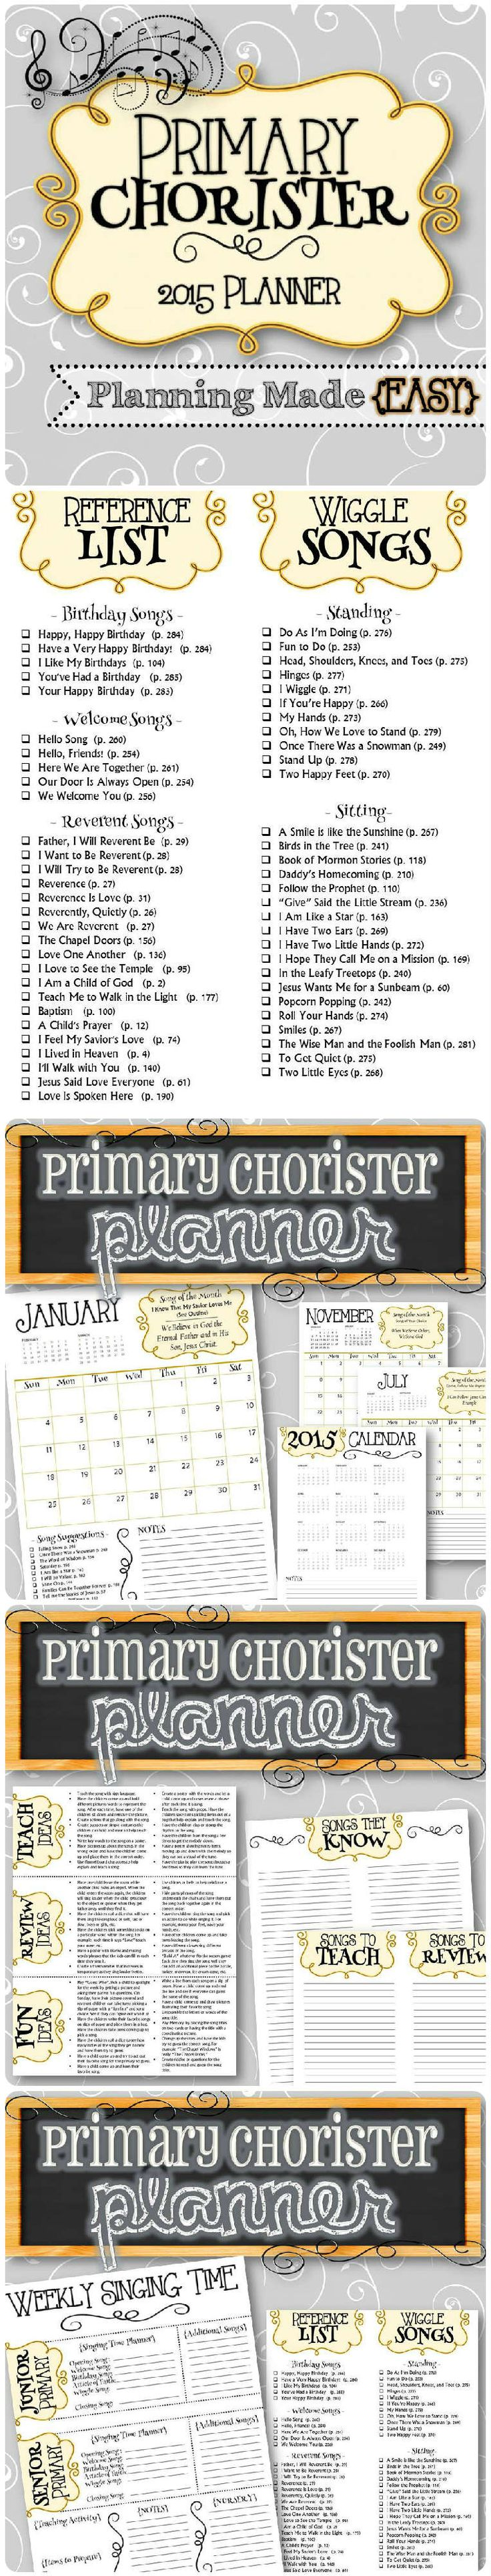 Primary Chorister planning done for you with the 2015 curriculum! An all in one planner that tells you the monthly song and theme, along with song suggestions by month, teaching ideas, reference lists, planning pages, etc. Everything in one convenient place! Perfect for Choristers and Subs! ✫ FREEBIE✫ Songs Reference List, visit: http://bit.ly/1t2HHLW